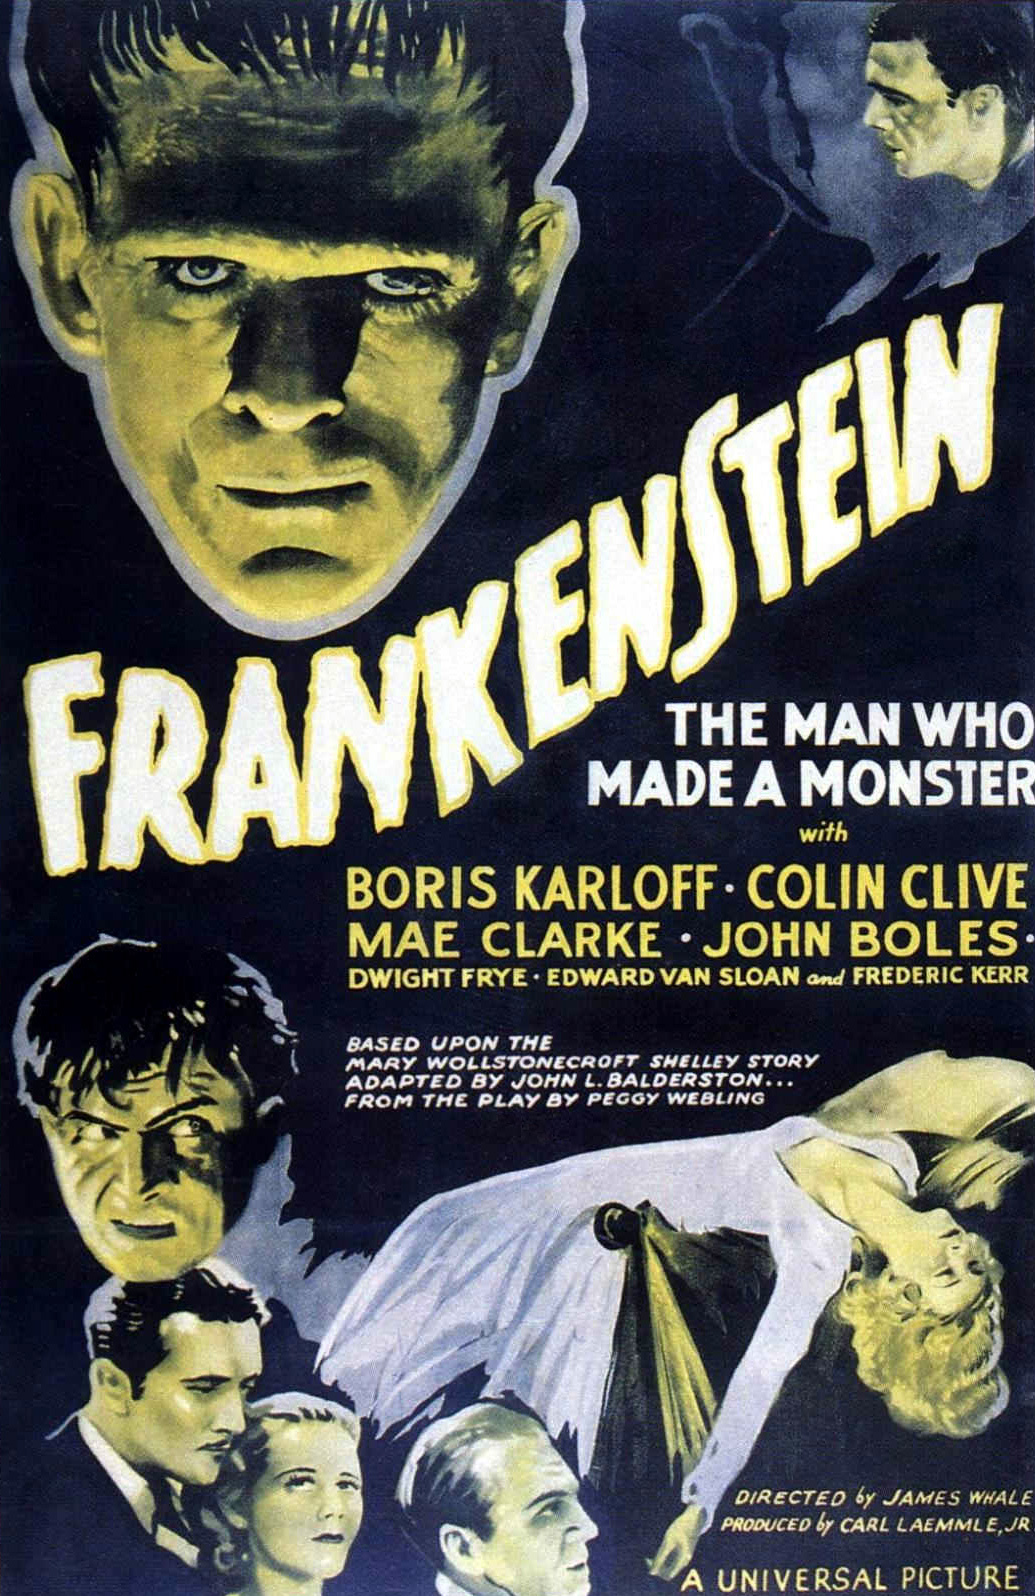 Frankenstein-Poster-classic-movies-19761154-1035-1596